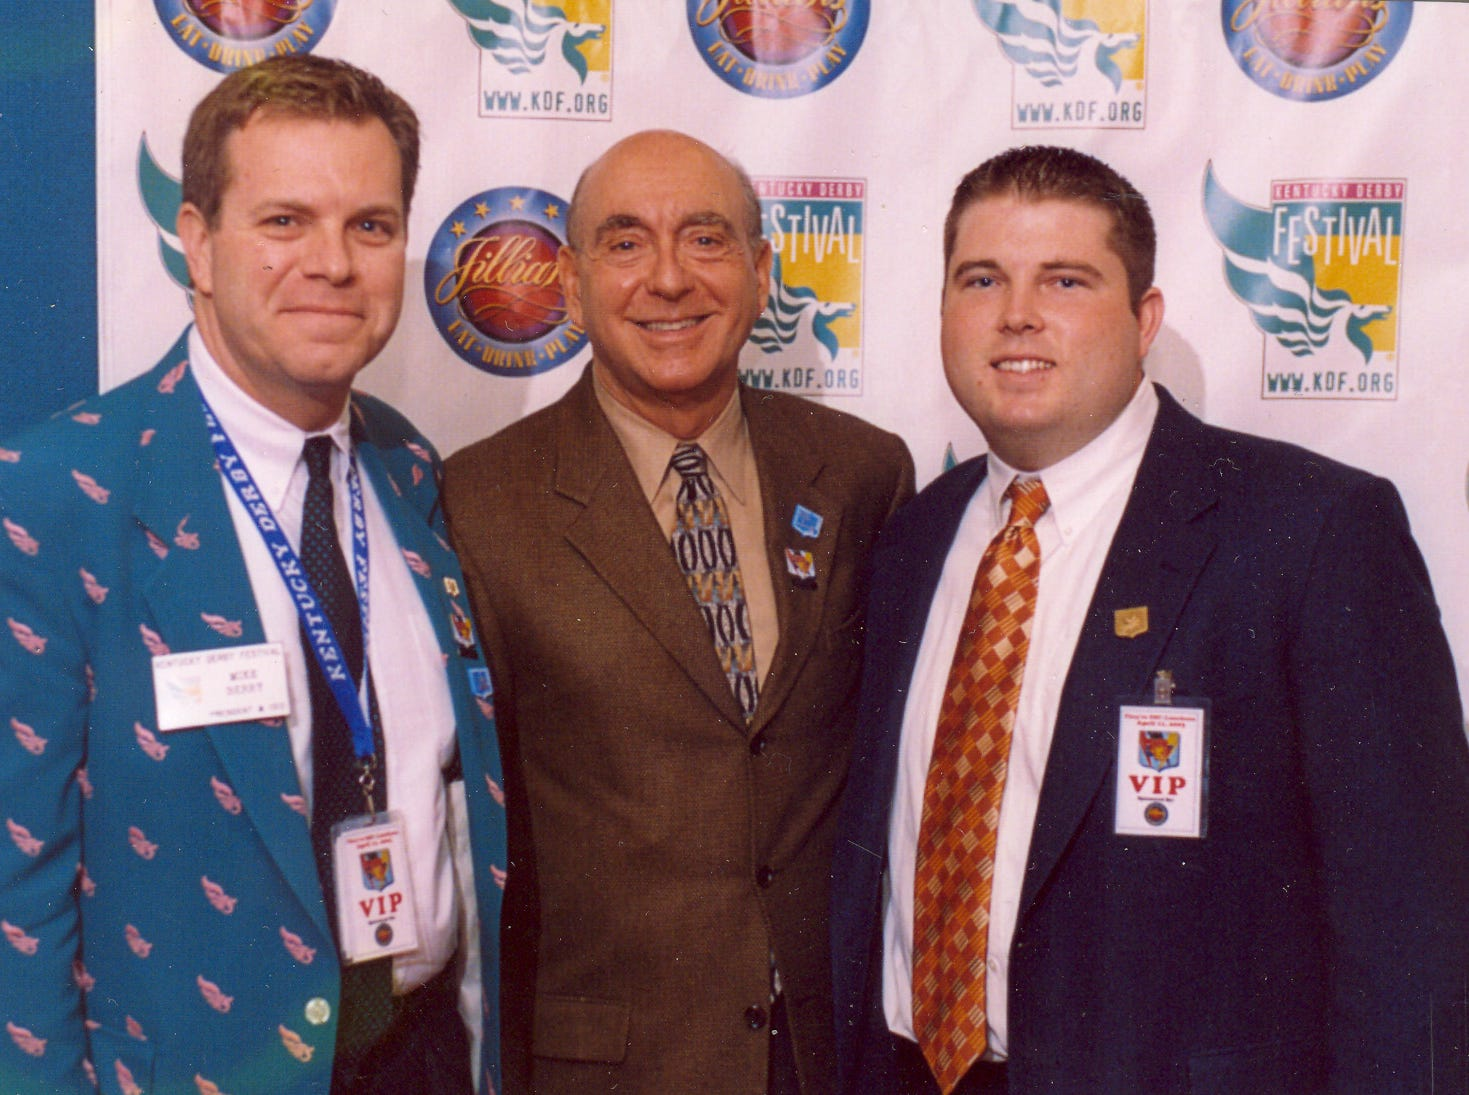 Mike Berry, left, retiring president and CEO of the Kentucky Derby Festival, pictured with Dick Vitale.